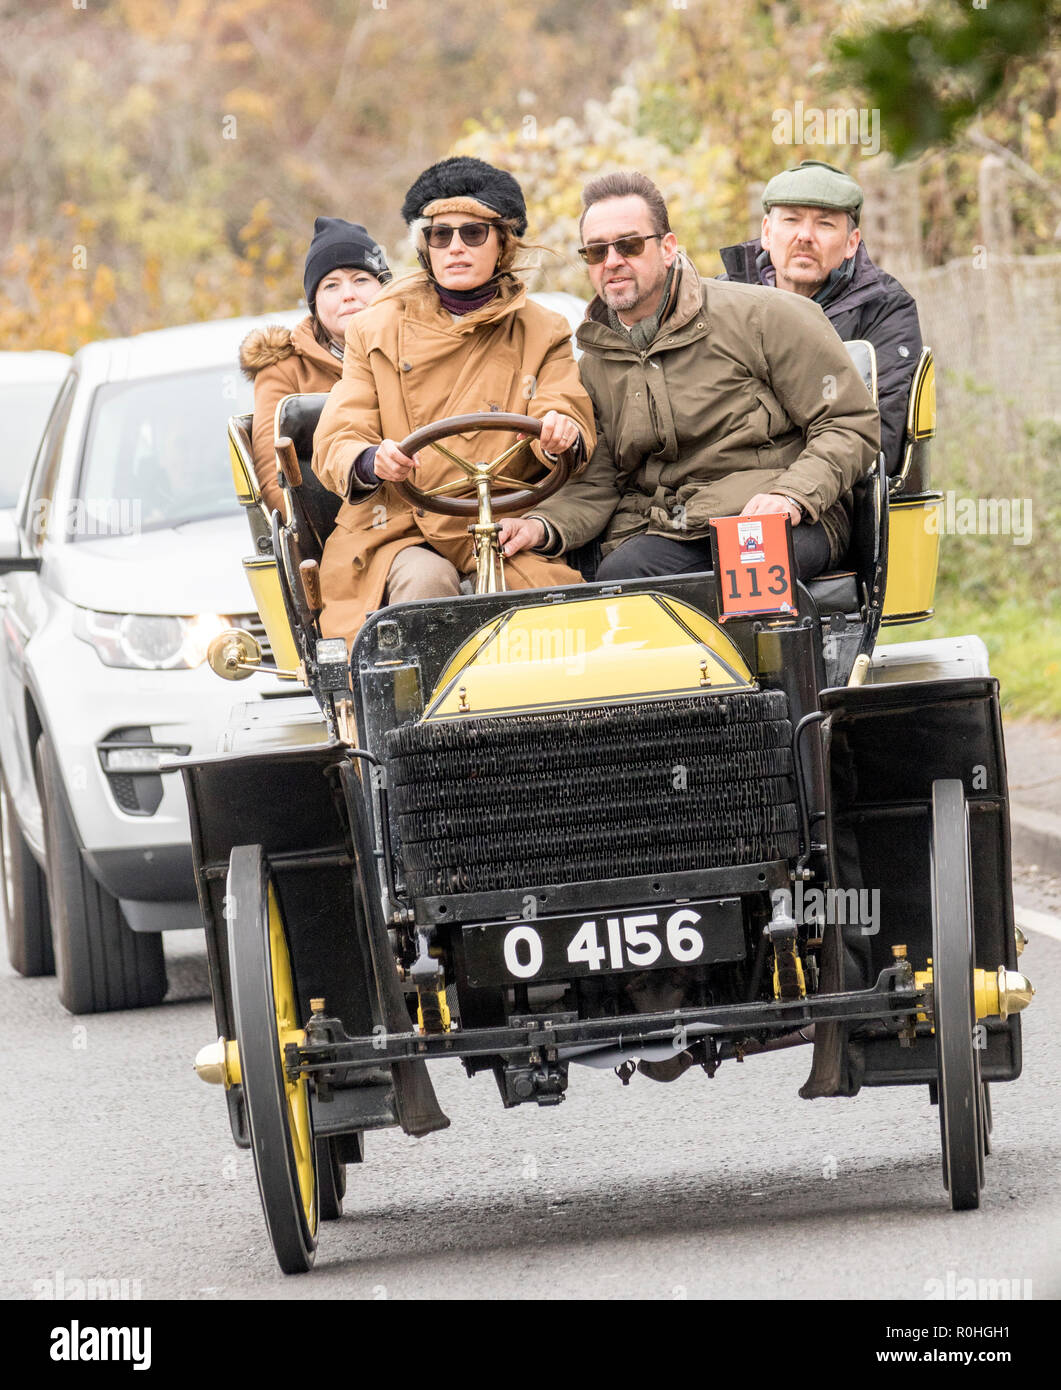 "Pyecombe, East Sussex, UK. 4th November 2018. Yasmin Le Bon seen here driving takes part in the 79th  ""Bonham's"" London to Brighton Veteran car run. The 60 mile route, starting in Hyde Park London concludes at Madeira Drive Brighton. The vehicles in this year annual event, including an 1895 Peugeot and an 1898 Panhard et Levassor were all built between 1893 and 1905. Credit: Newspics UK South/Alamy Live News - Stock Image"